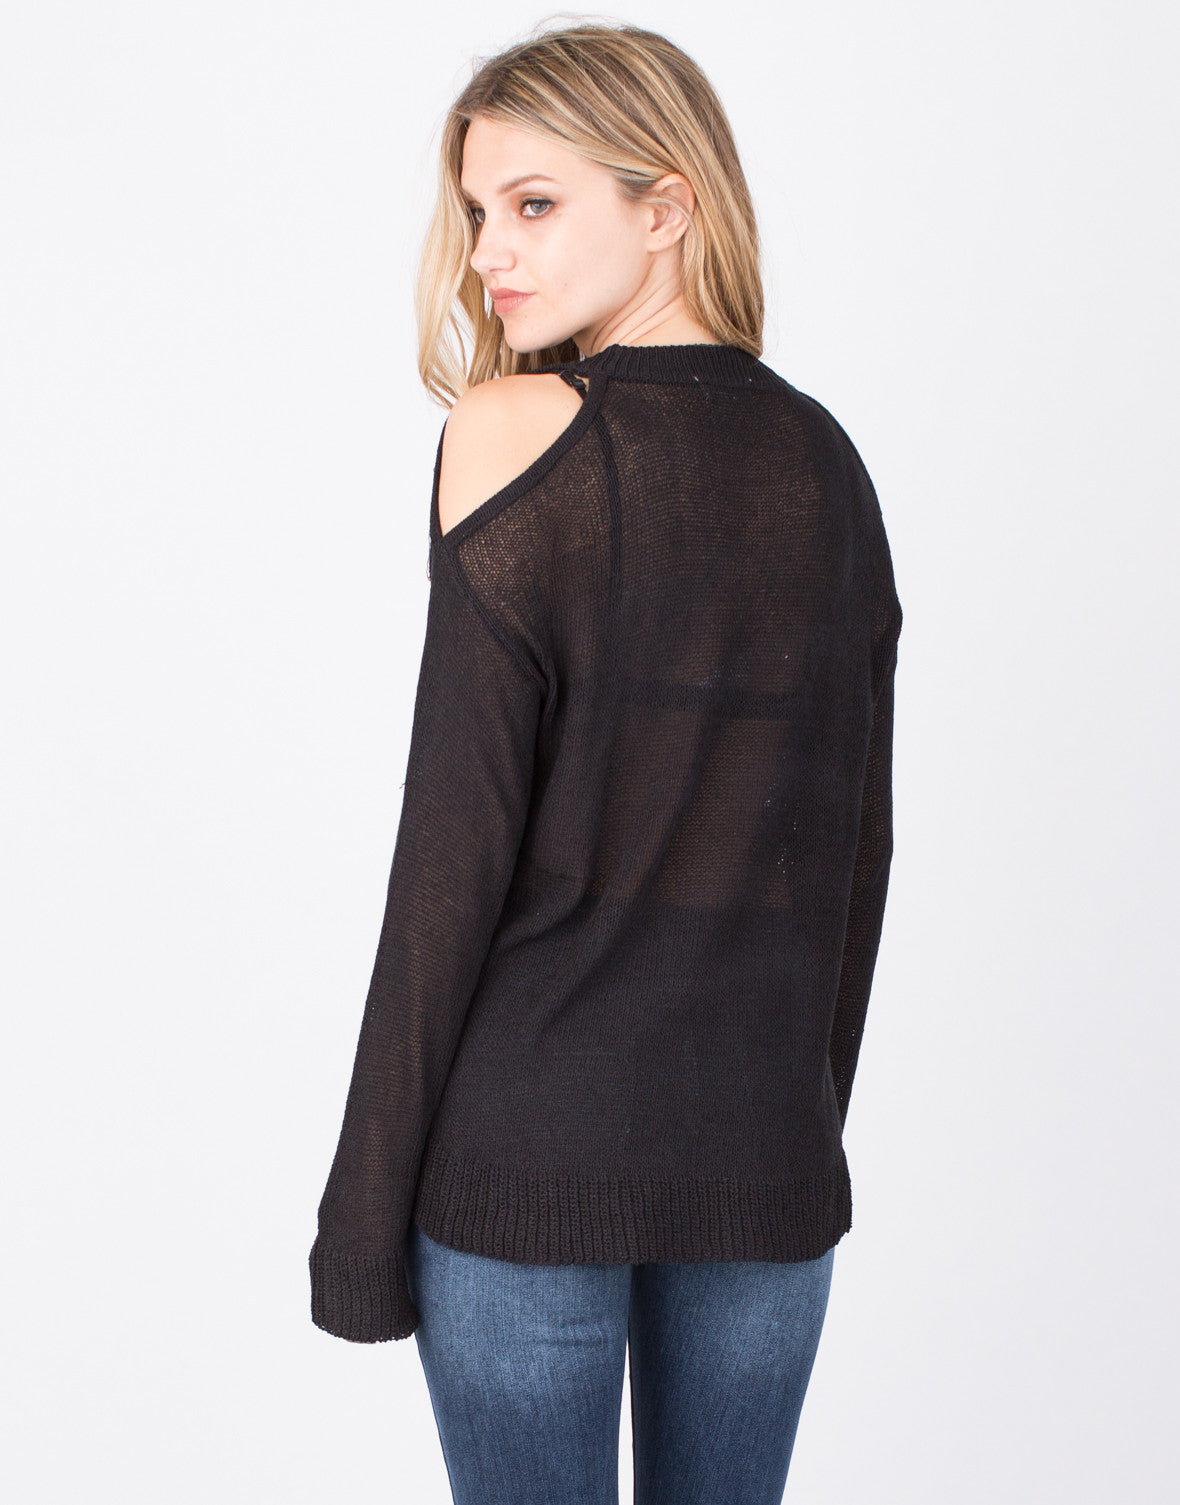 Back View of Cold Shoulder Sweater Top